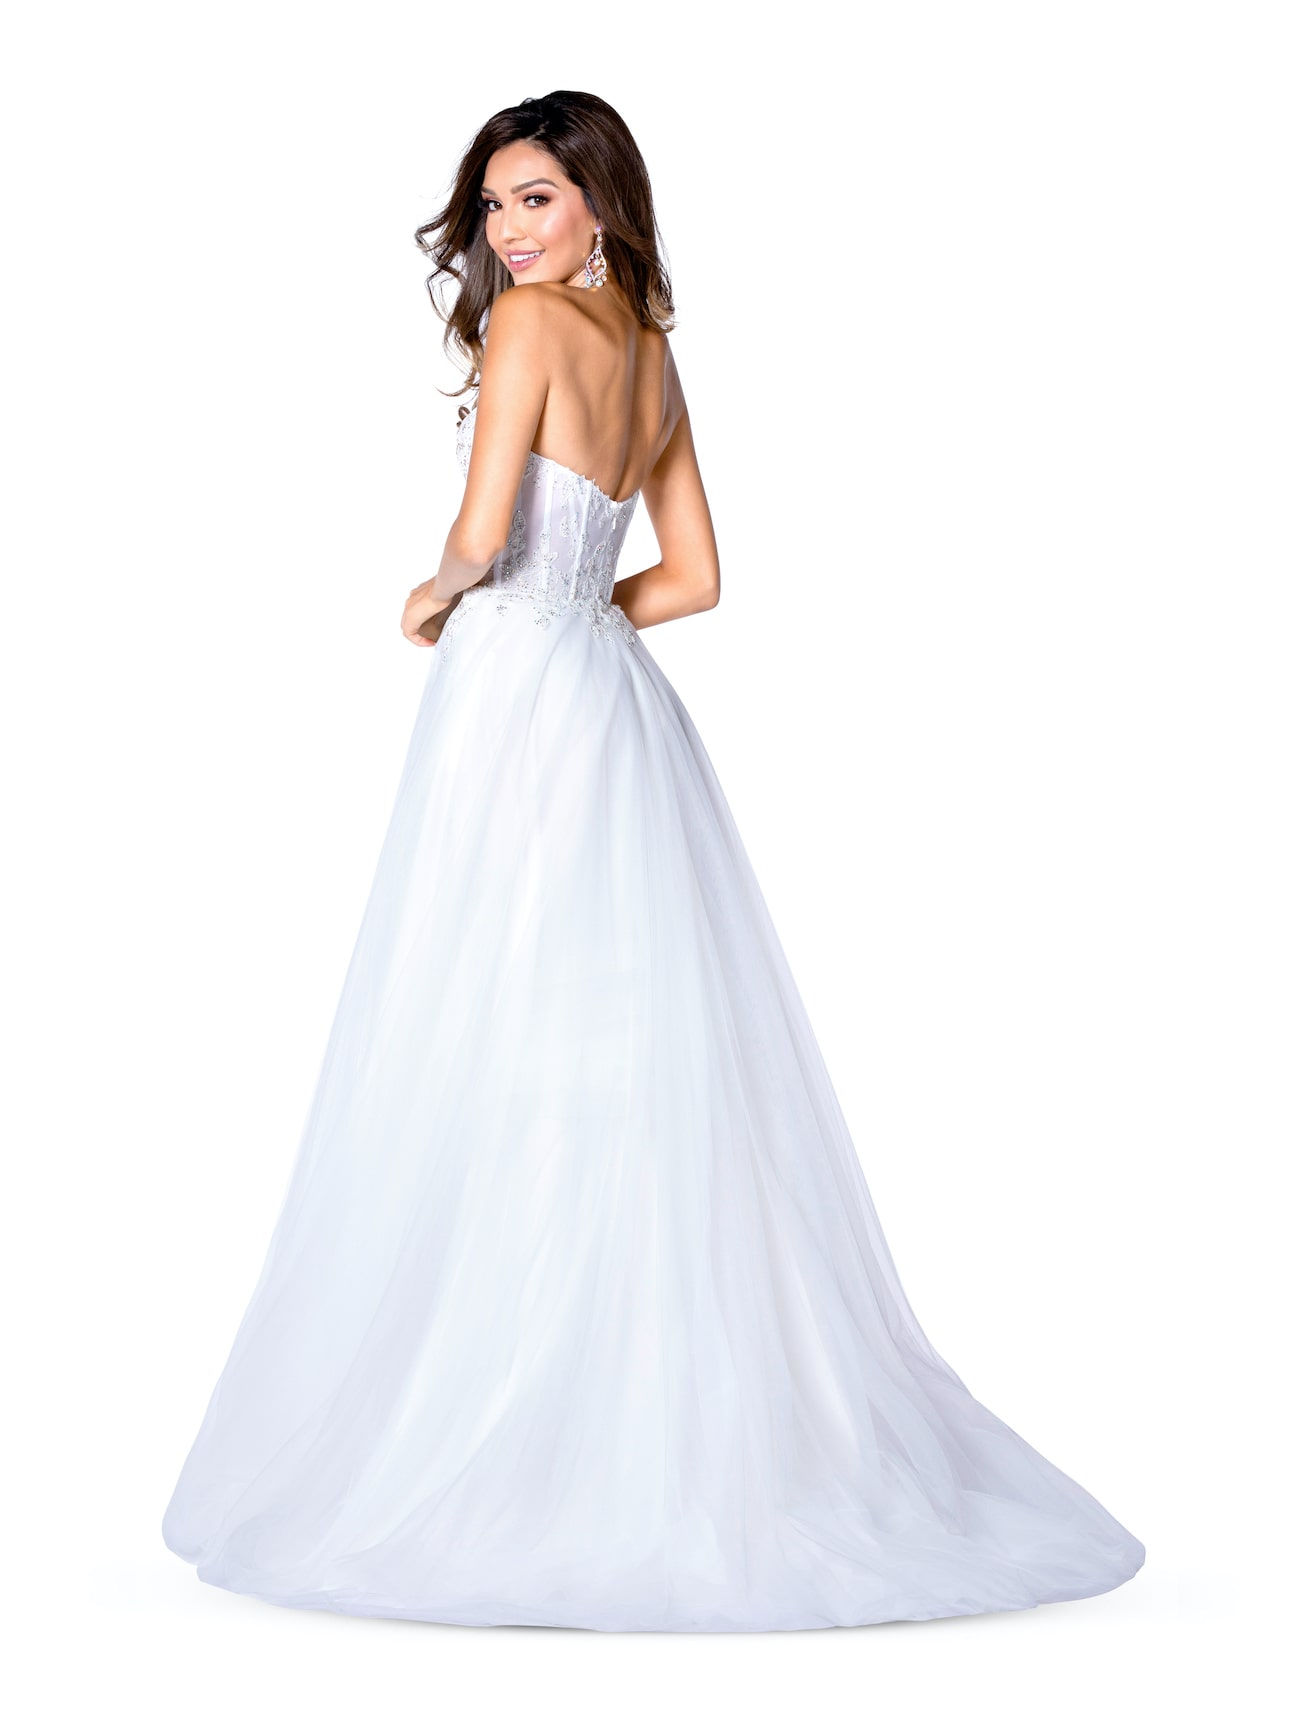 Vienna White Size 6 Ivory Backless A-line Dress on Queenly